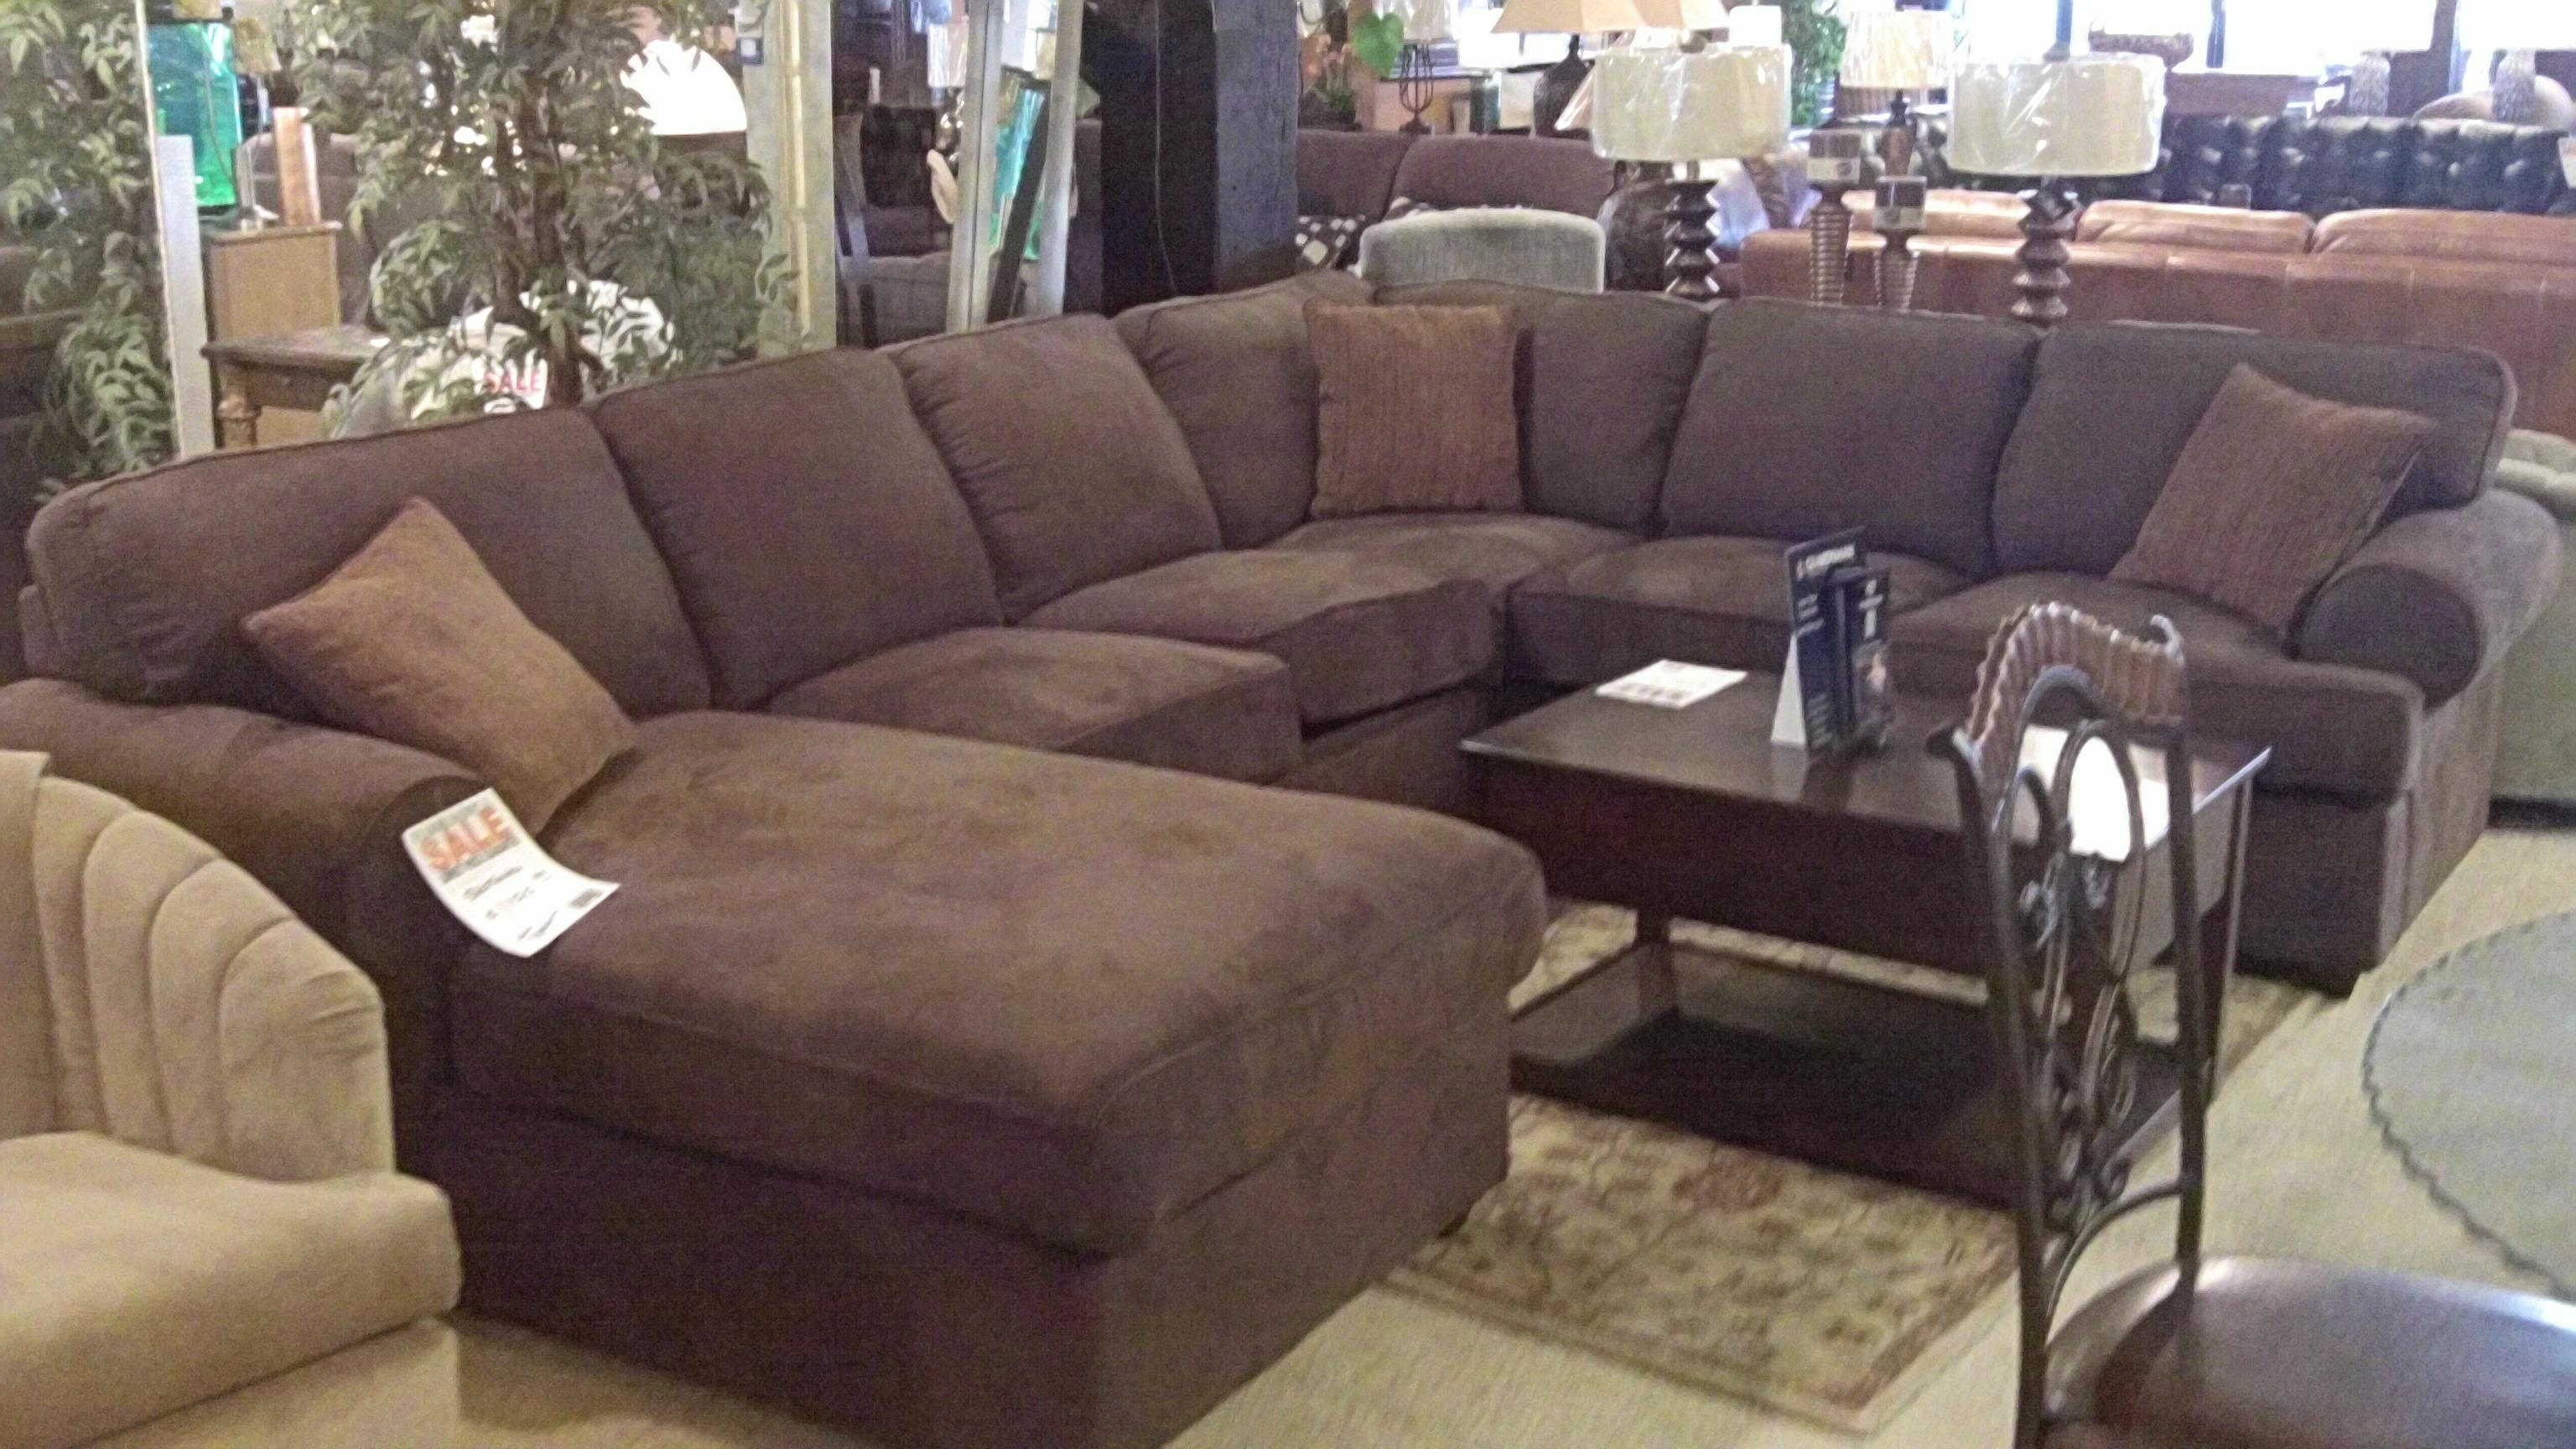 Furniture: Extra Large Sectional Sofa | Oversized Couches | Large Pertaining To Nice Sectional Couches (Image 7 of 20)